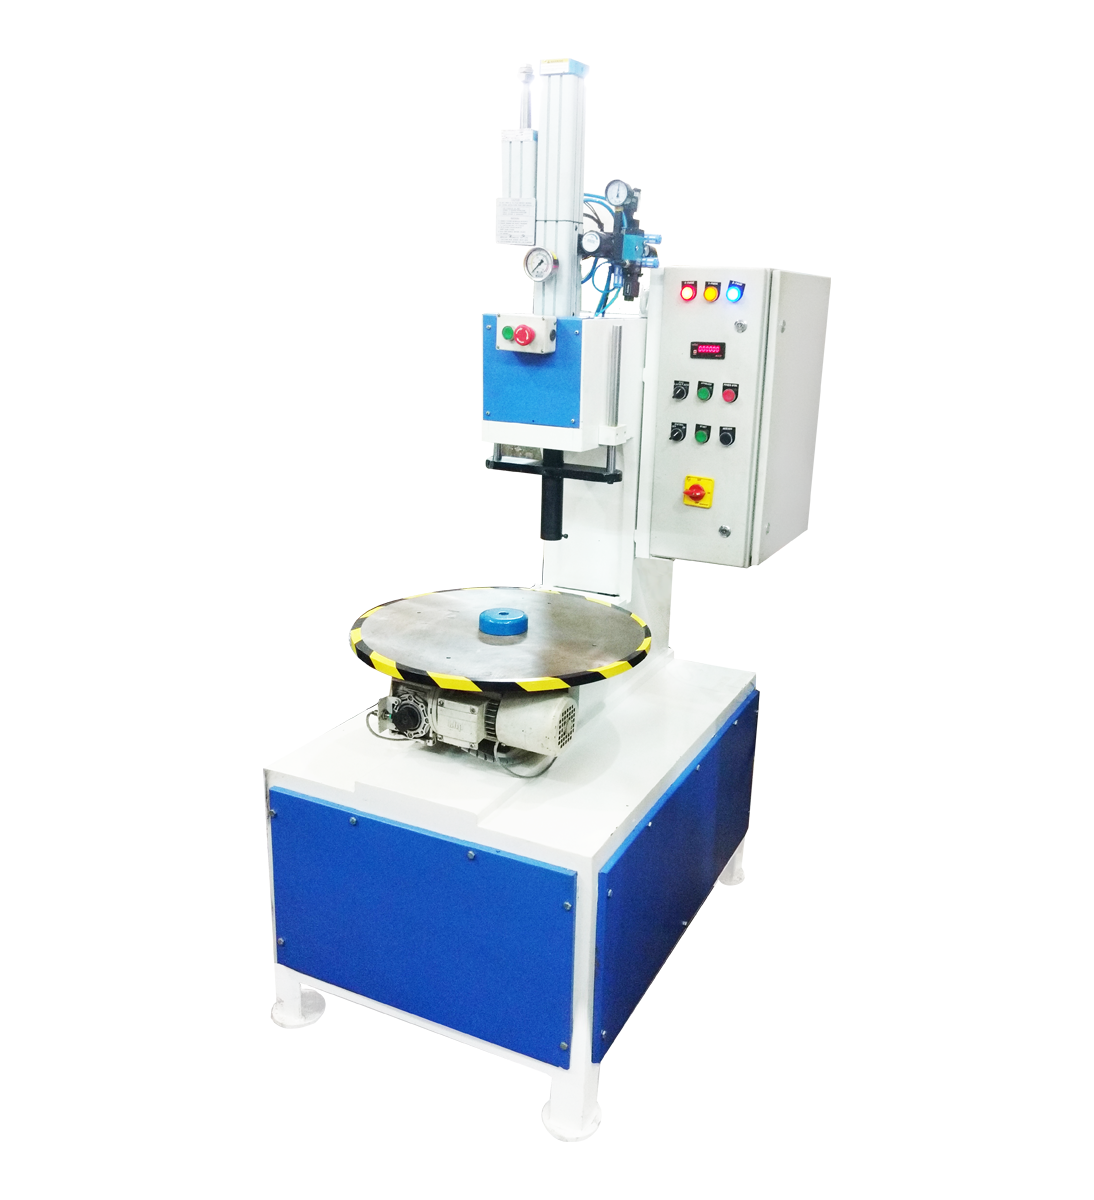 ritters Hydro-Pneumatic Press with 4-Station Indexing Table